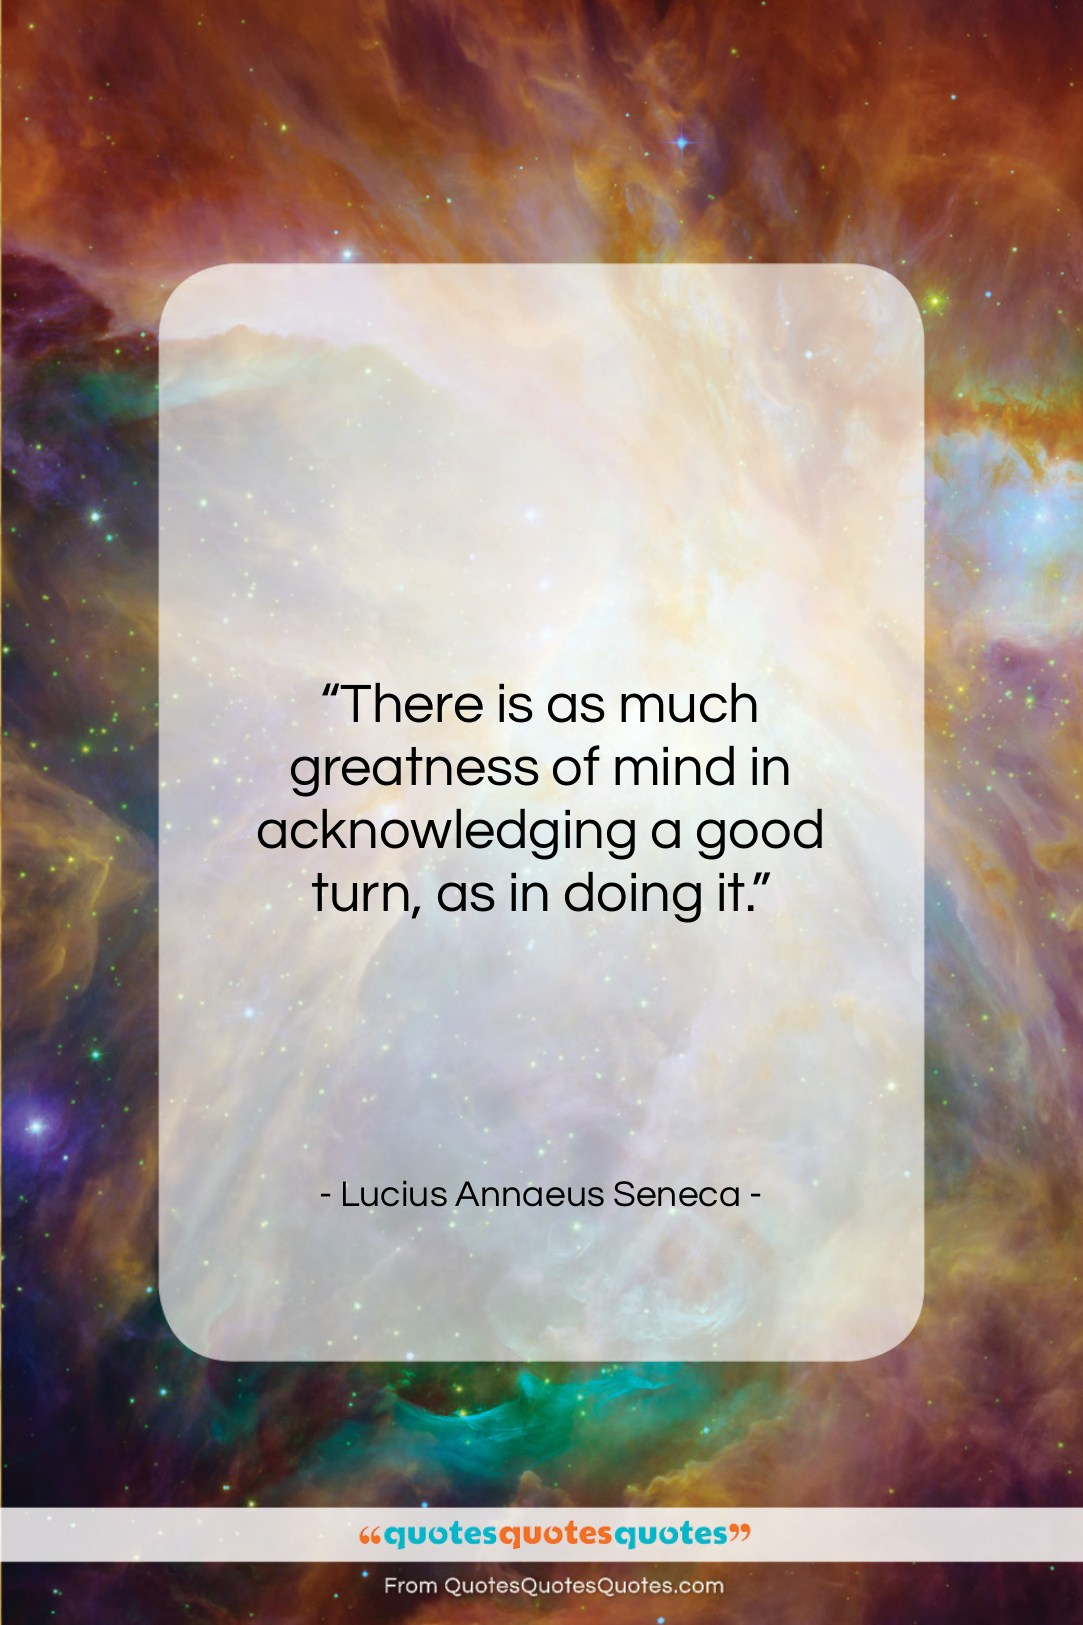 """Lucius Annaeus Seneca quote: """"There is as much greatness of mind…""""- at QuotesQuotesQuotes.com"""